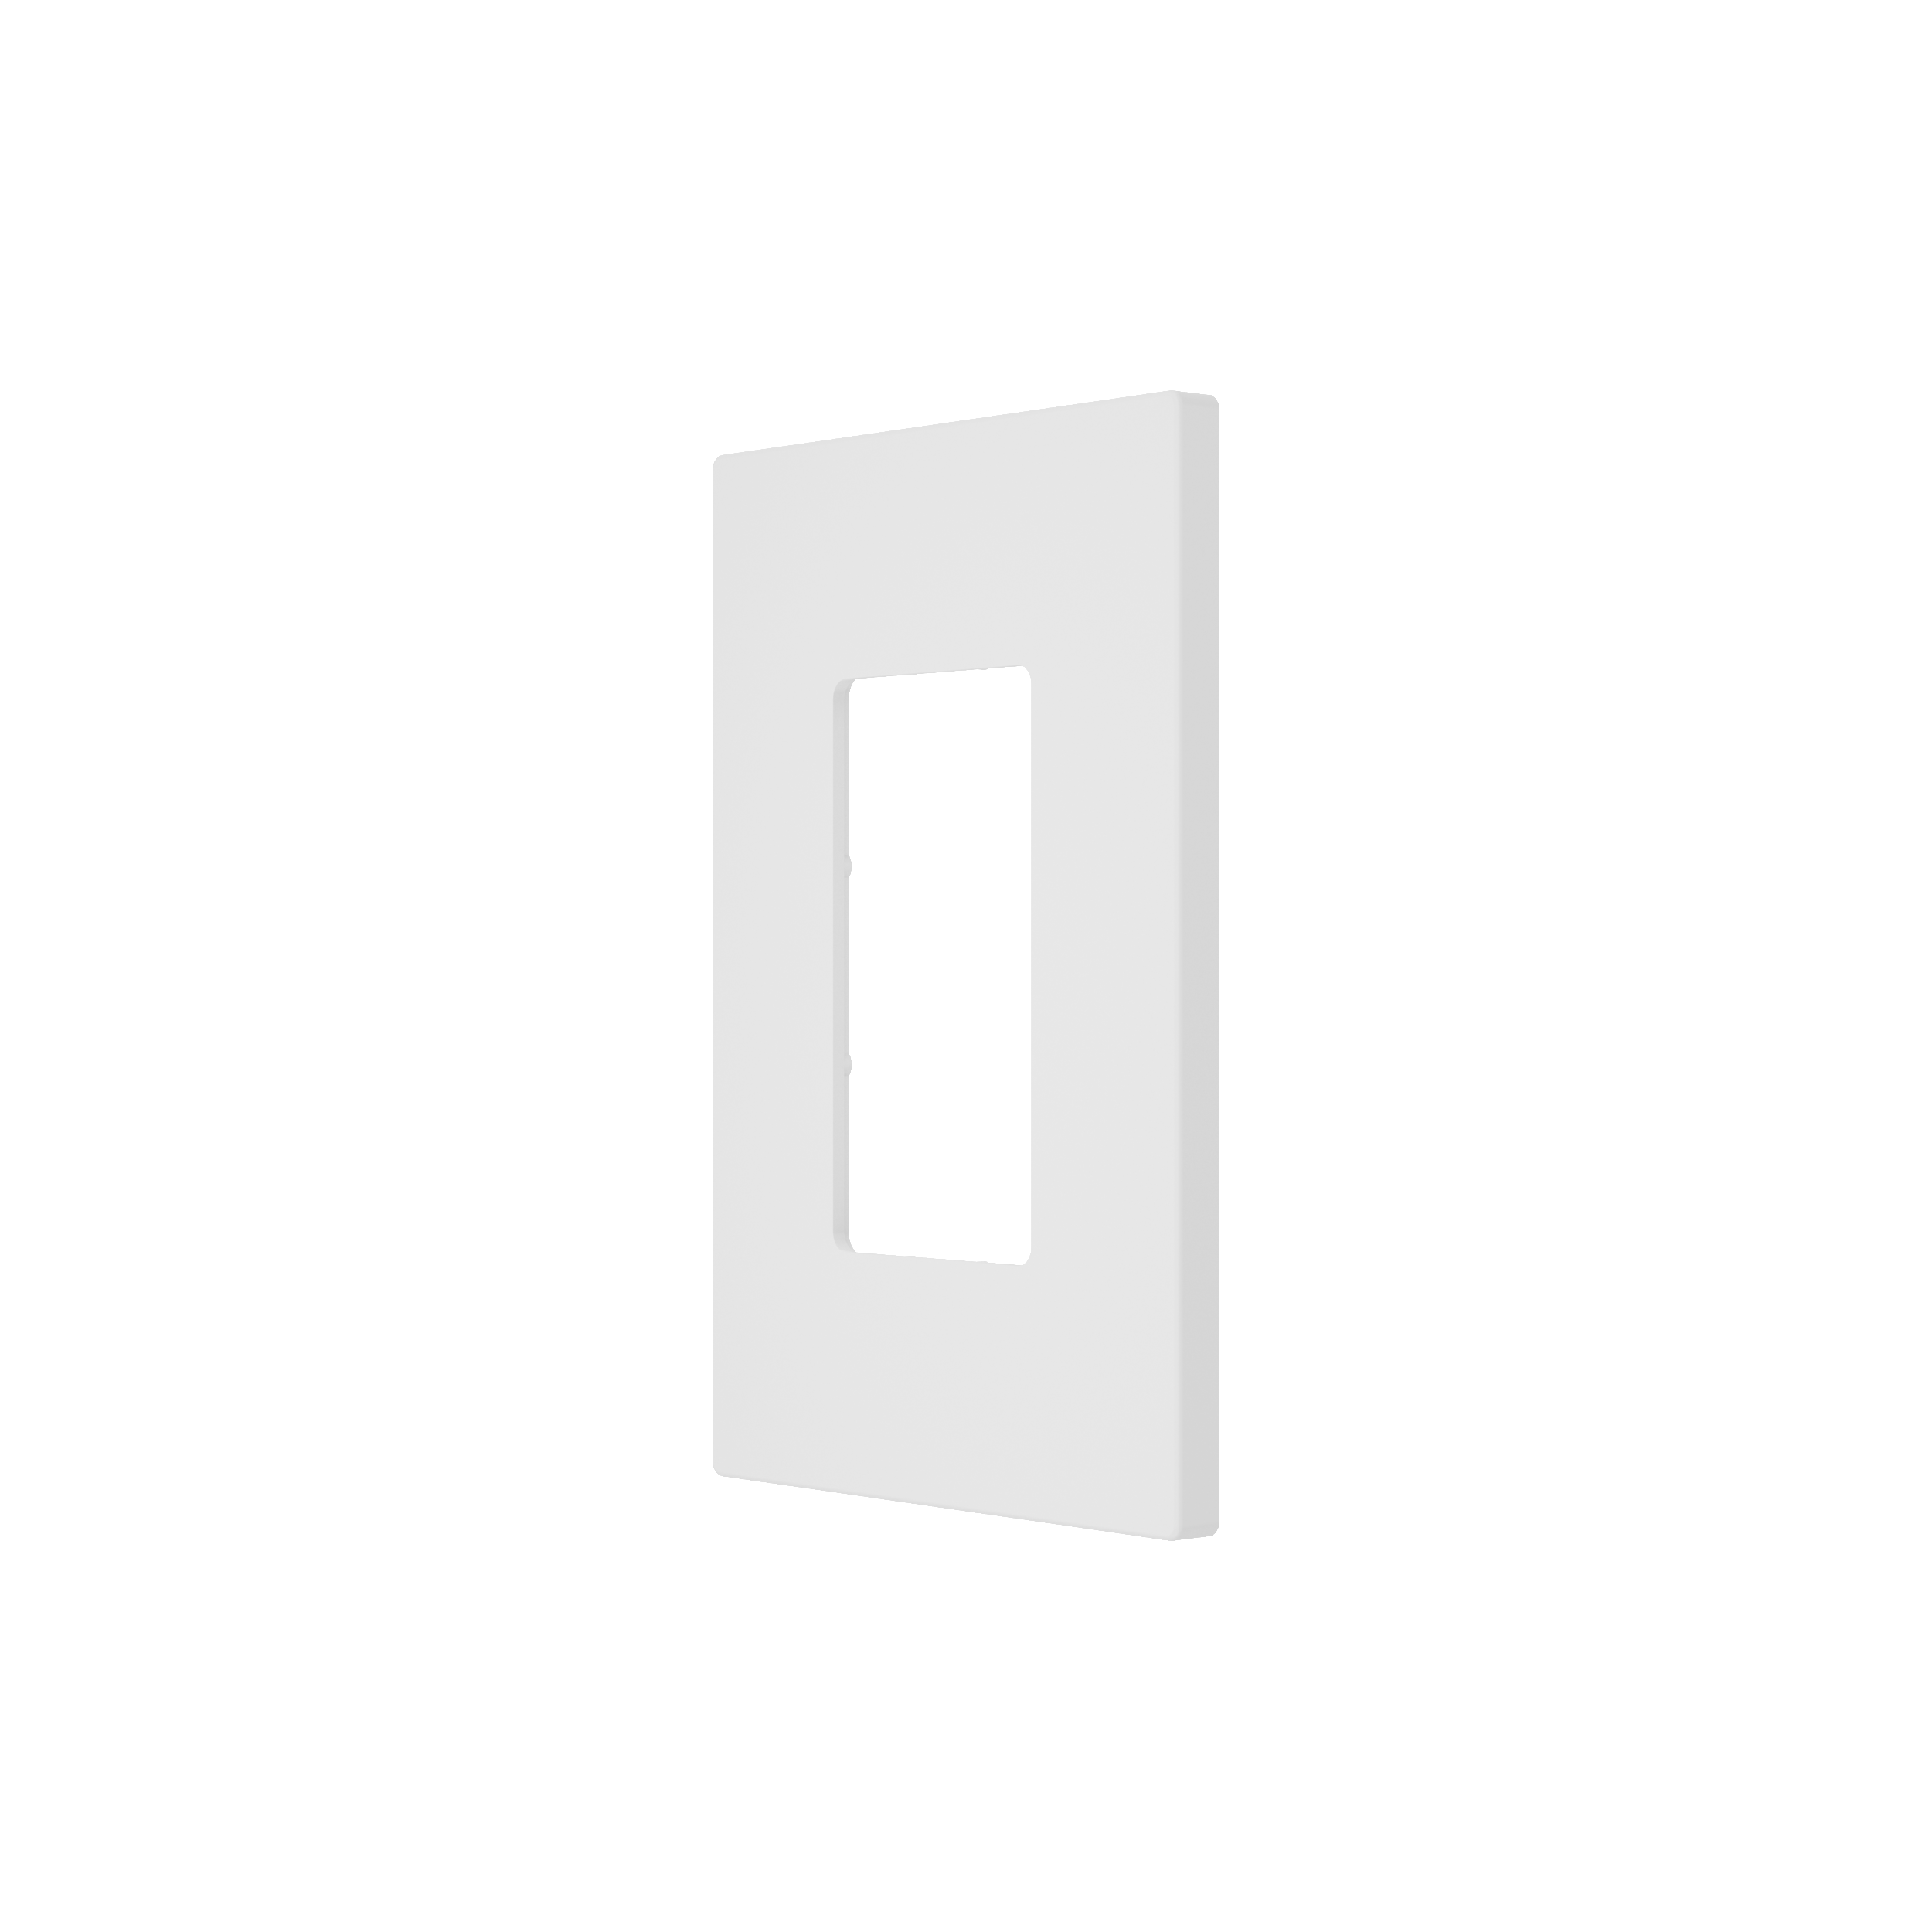 Wall Plate (1-Gang) 02.png